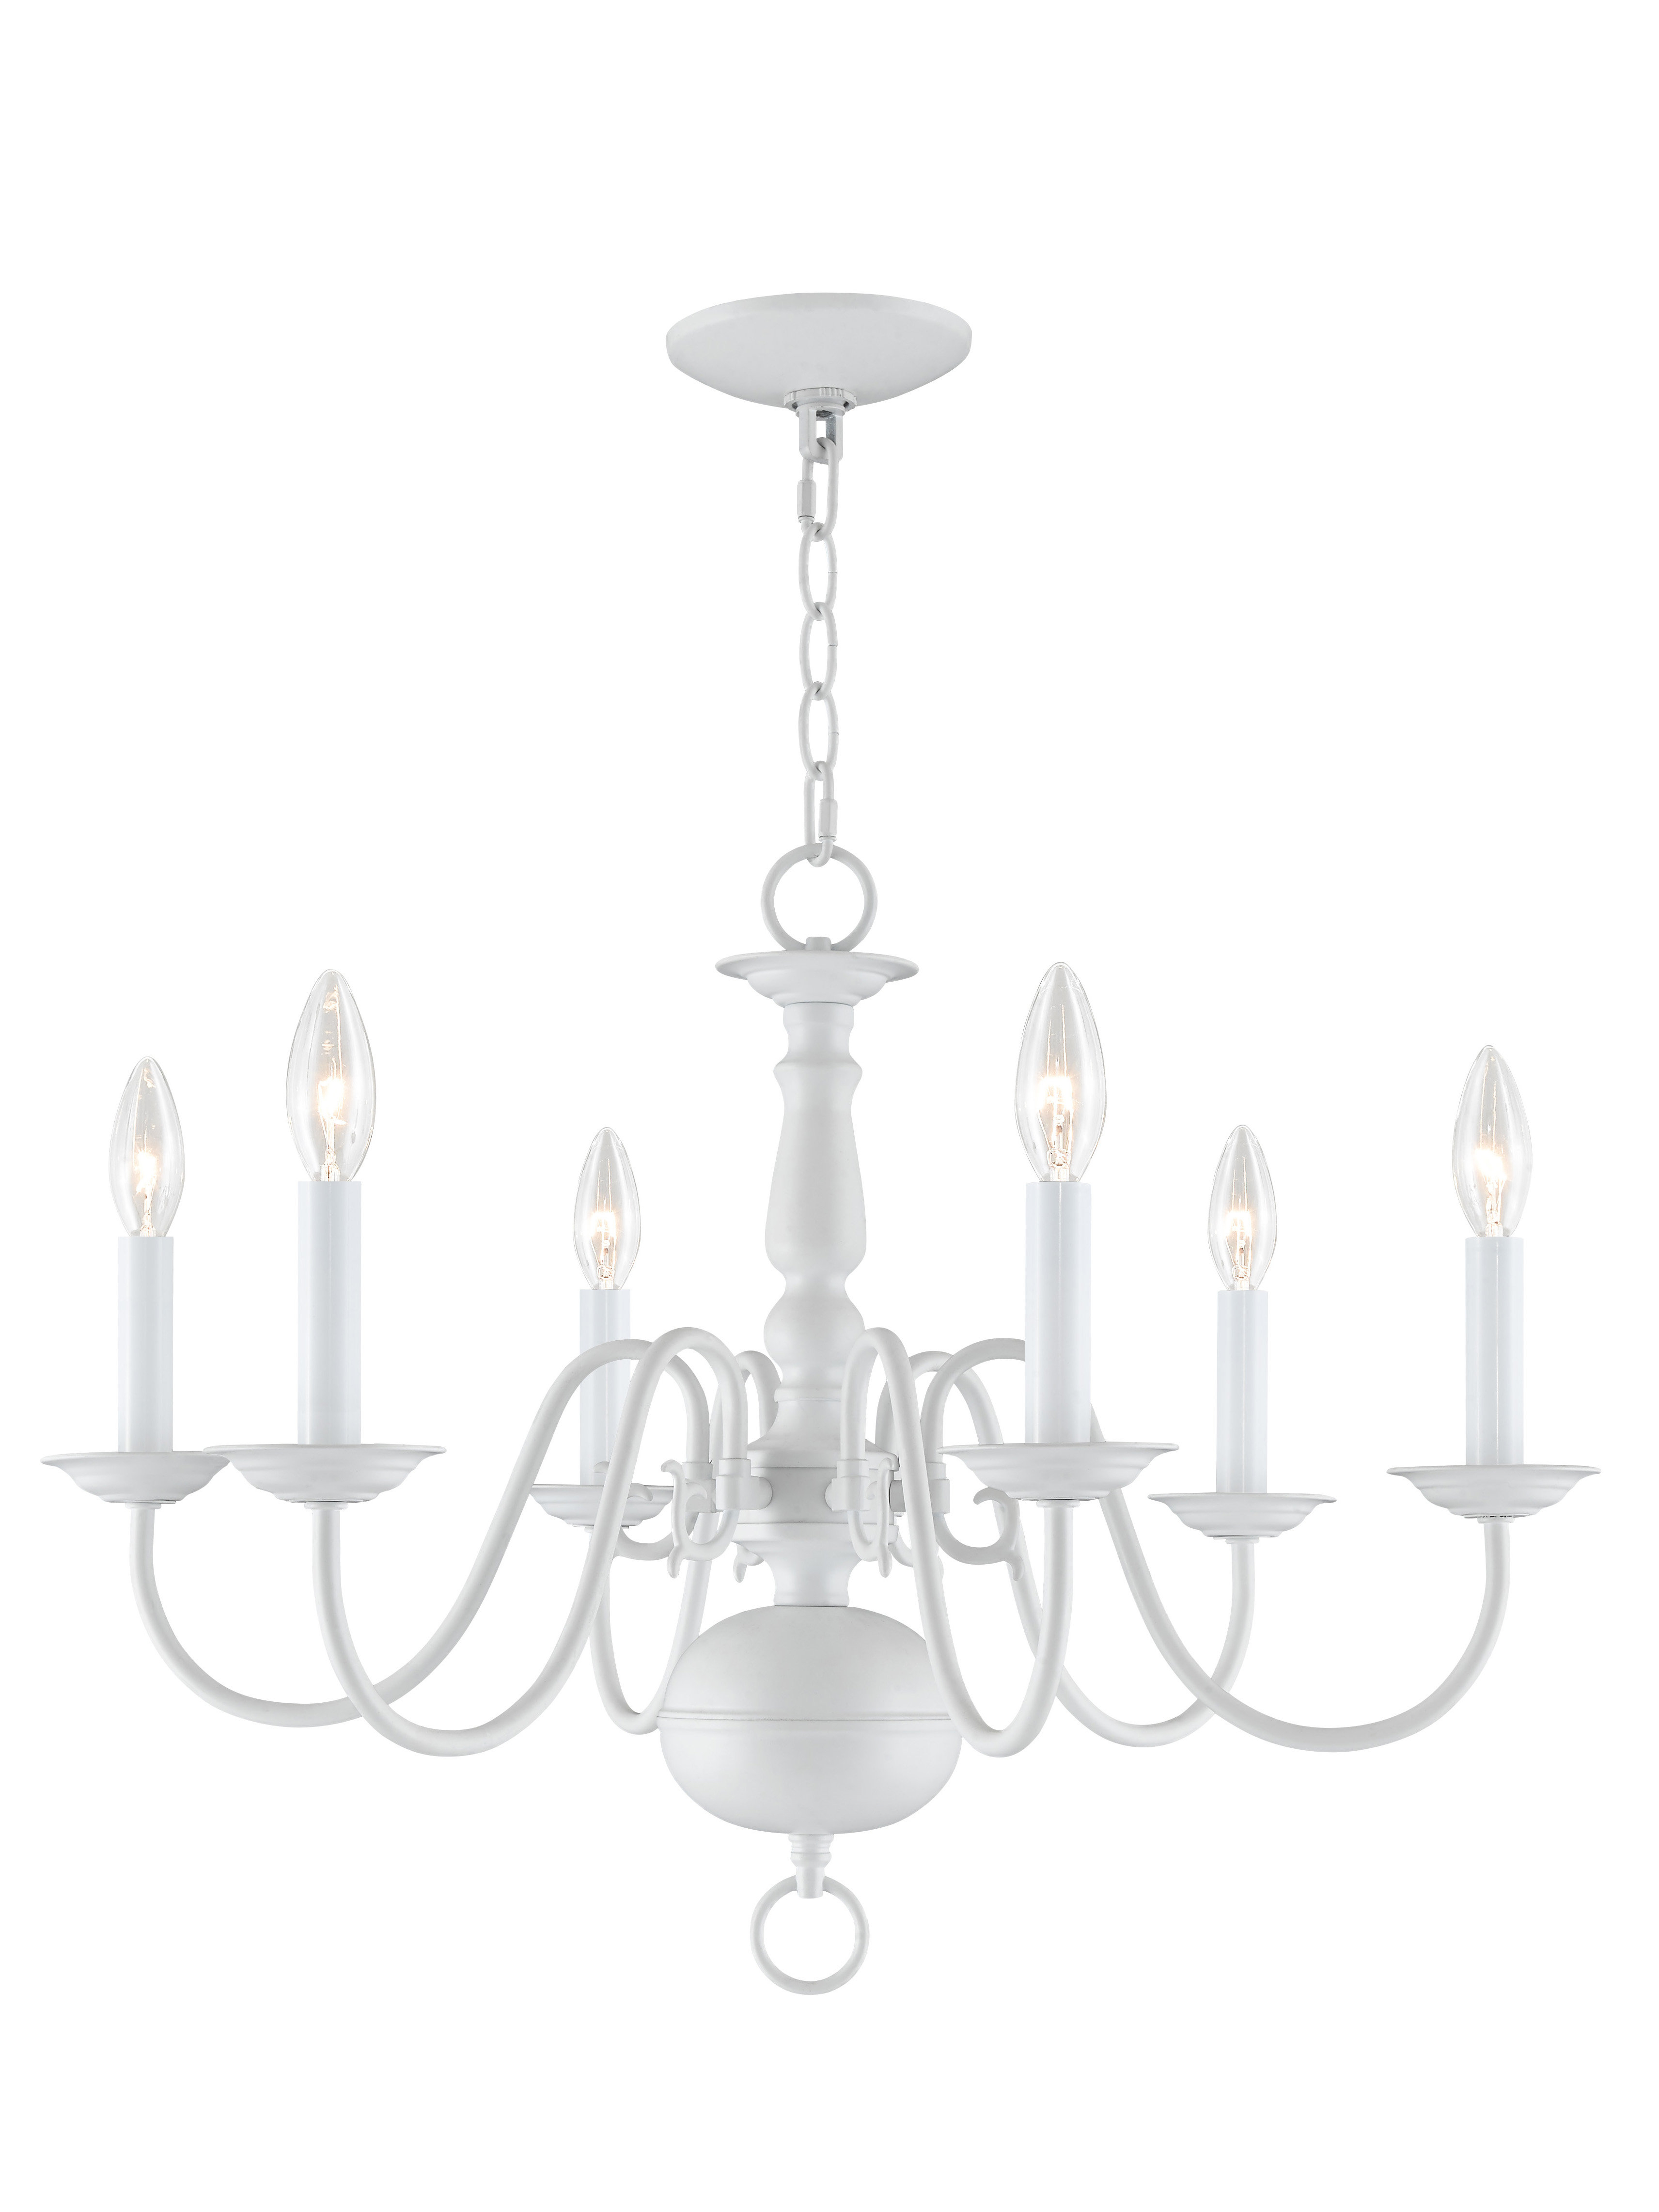 Favorite Three Posts Allensby 6 Light Candle Style Chandelier Intended For Diaz 6 Light Candle Style Chandeliers (View 20 of 25)